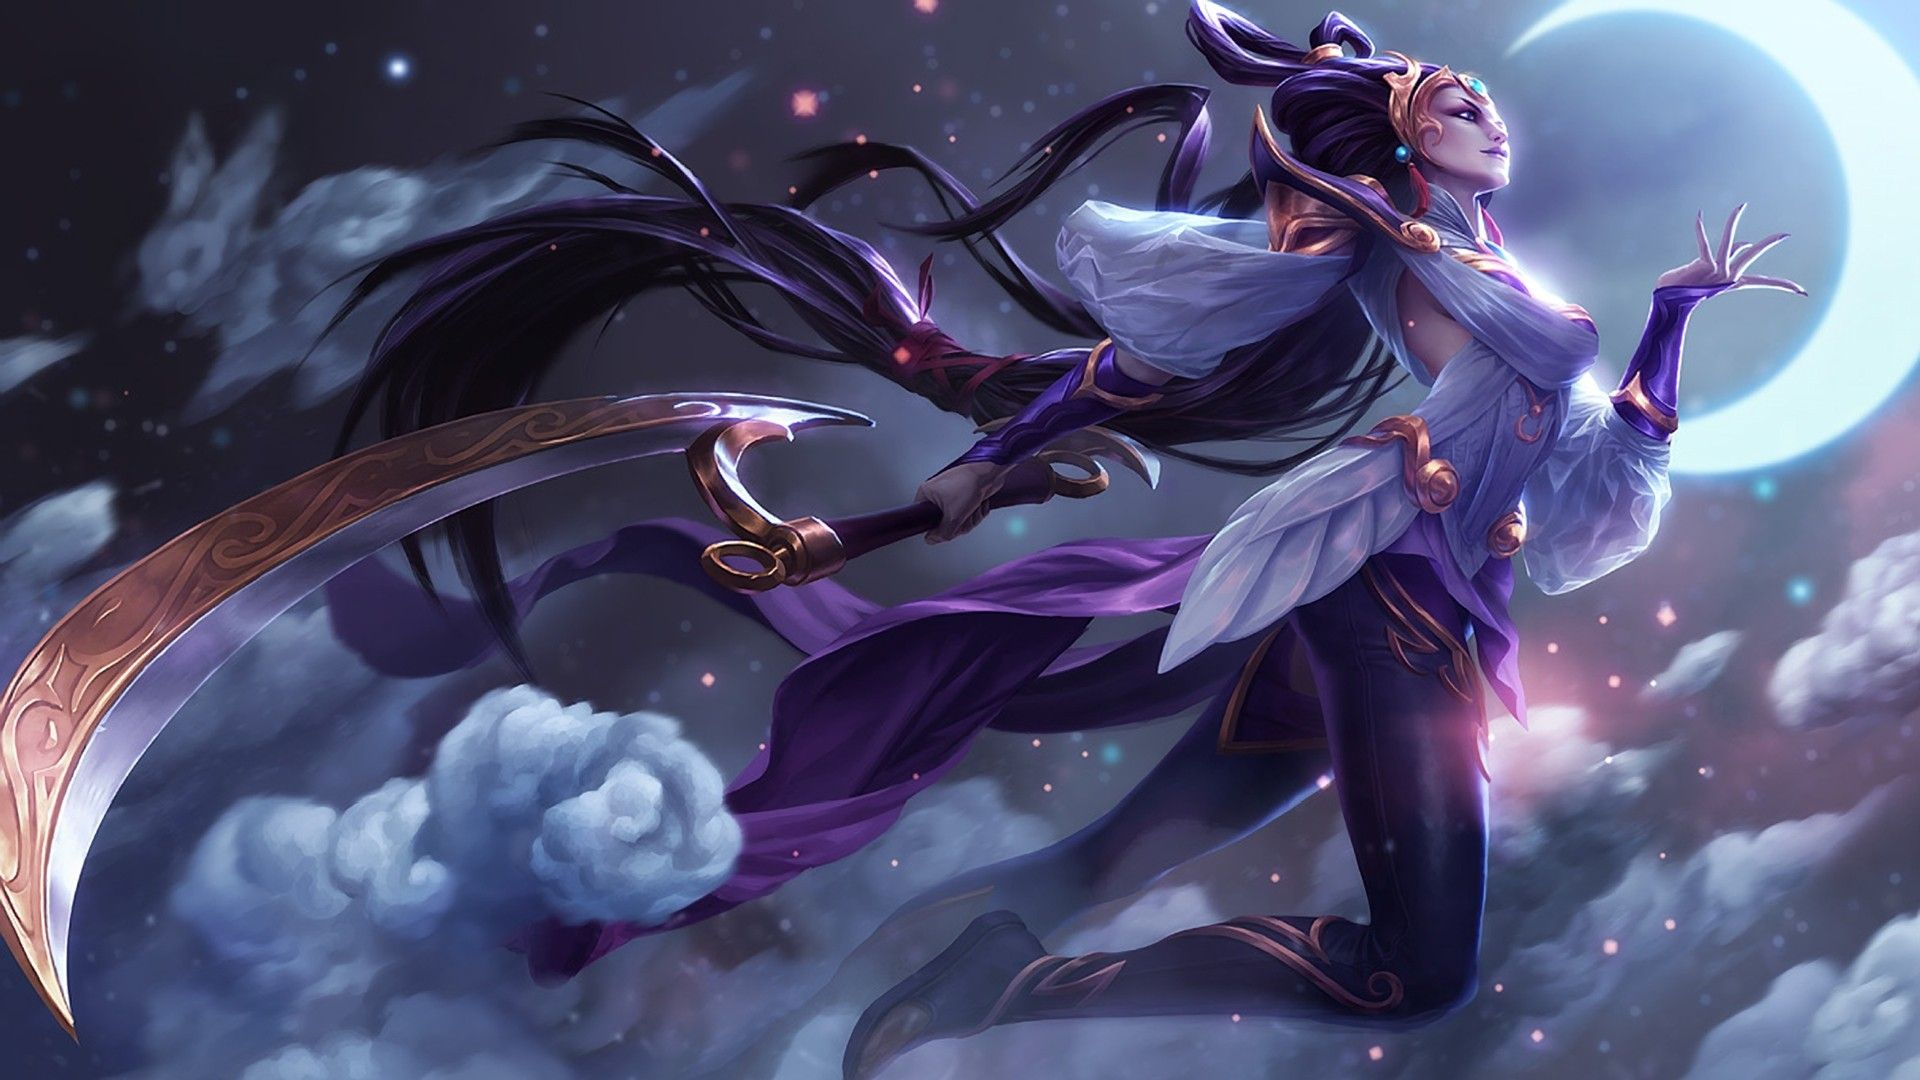 Lunar Goddess Diana Wallpaper Games Wallpapers Igames Wallpapers